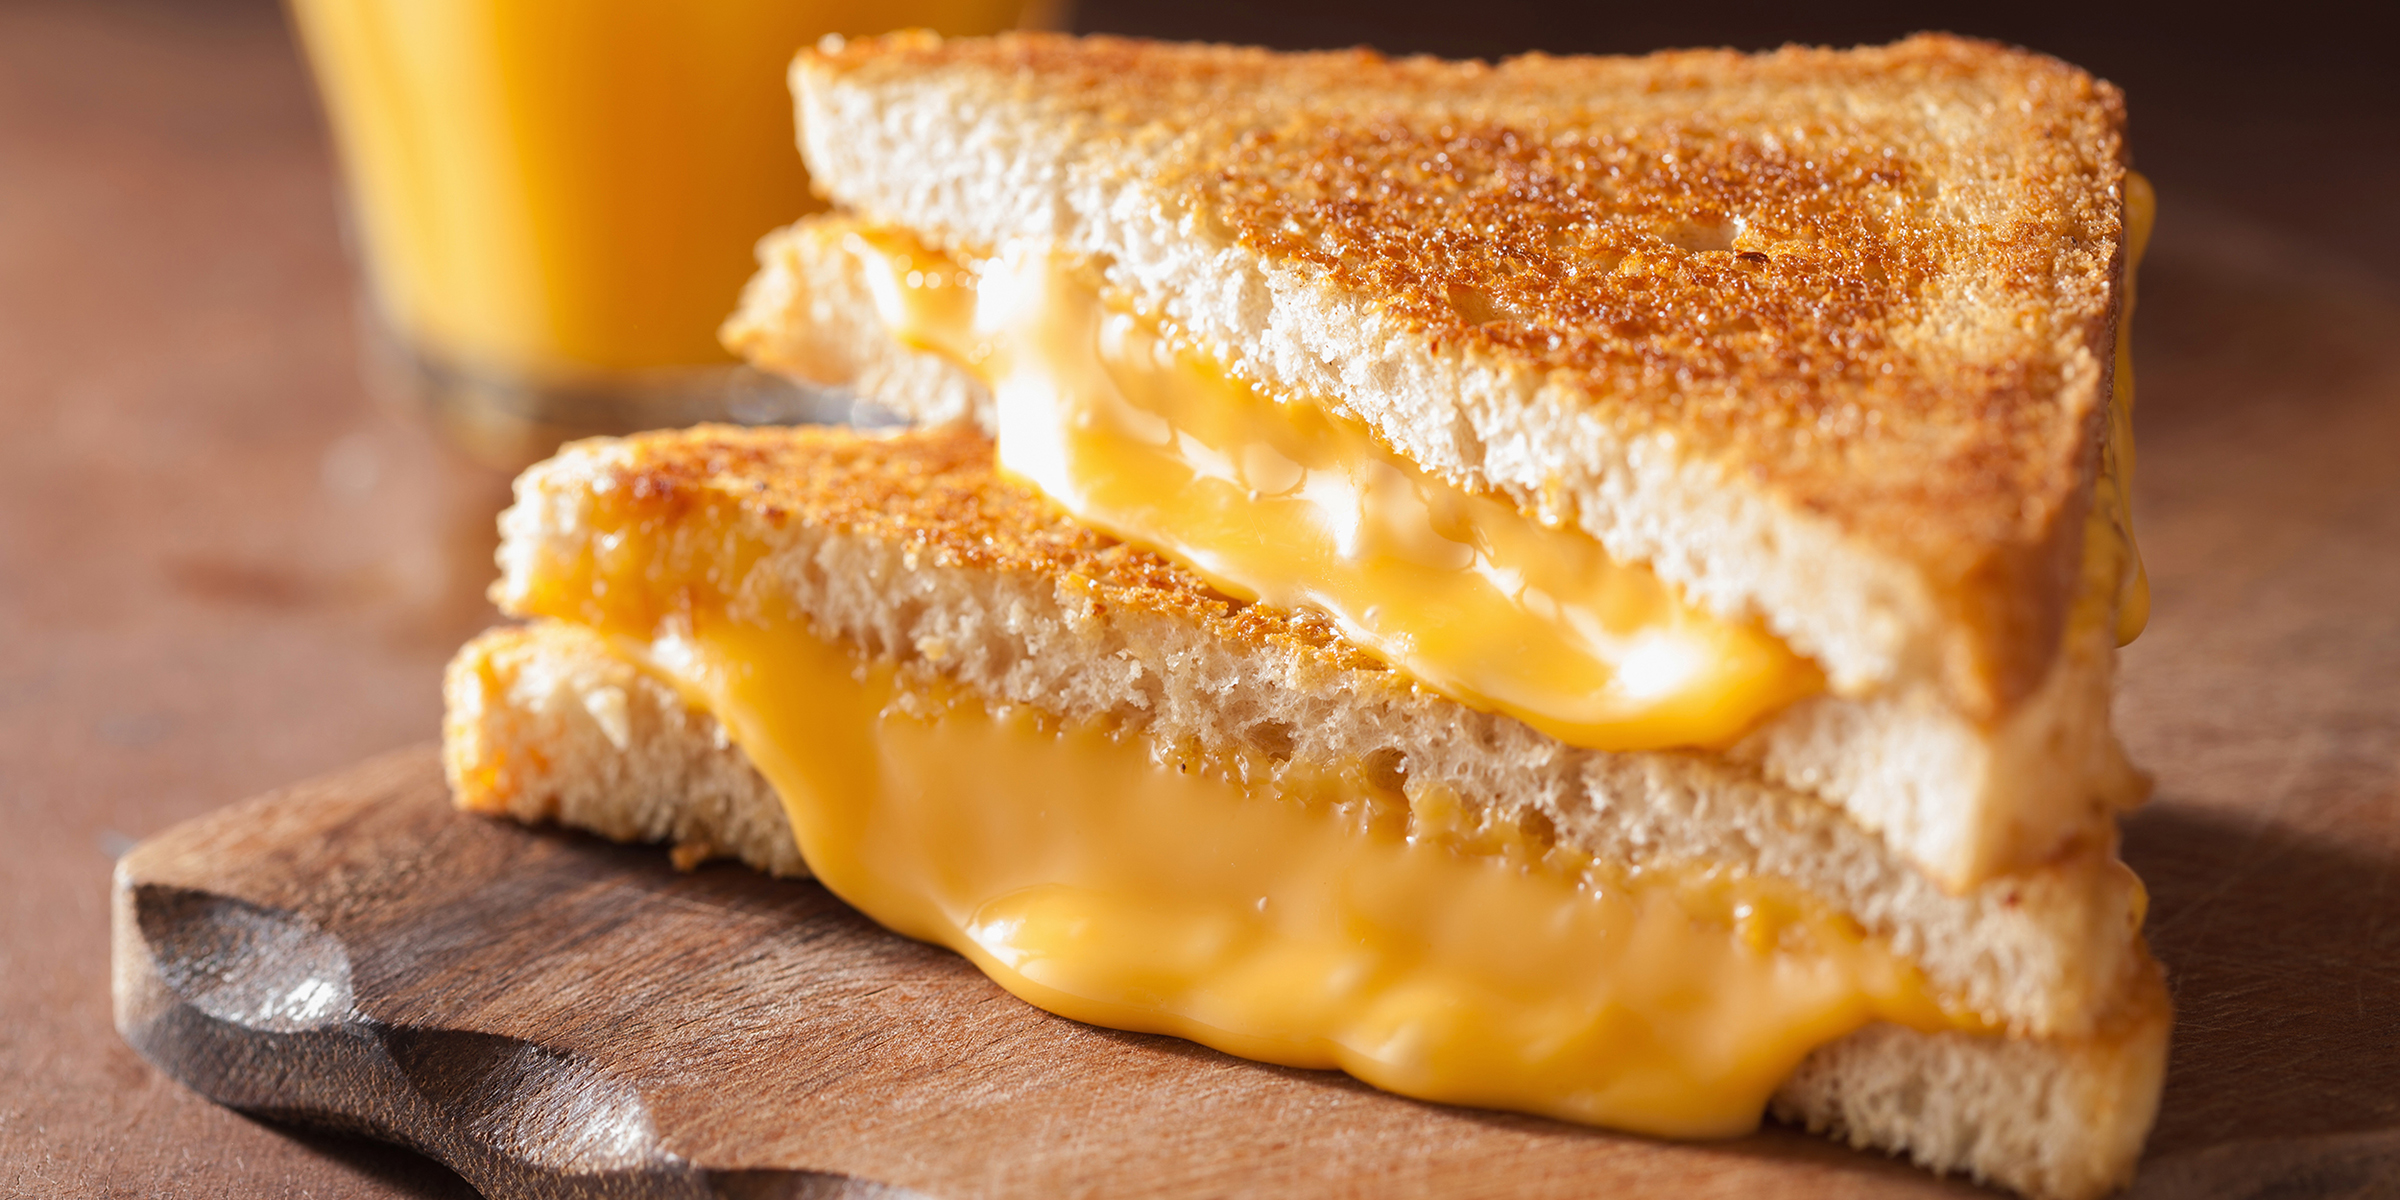 The Best Grilled Cheese Recipes For National Grilled Cheese Day